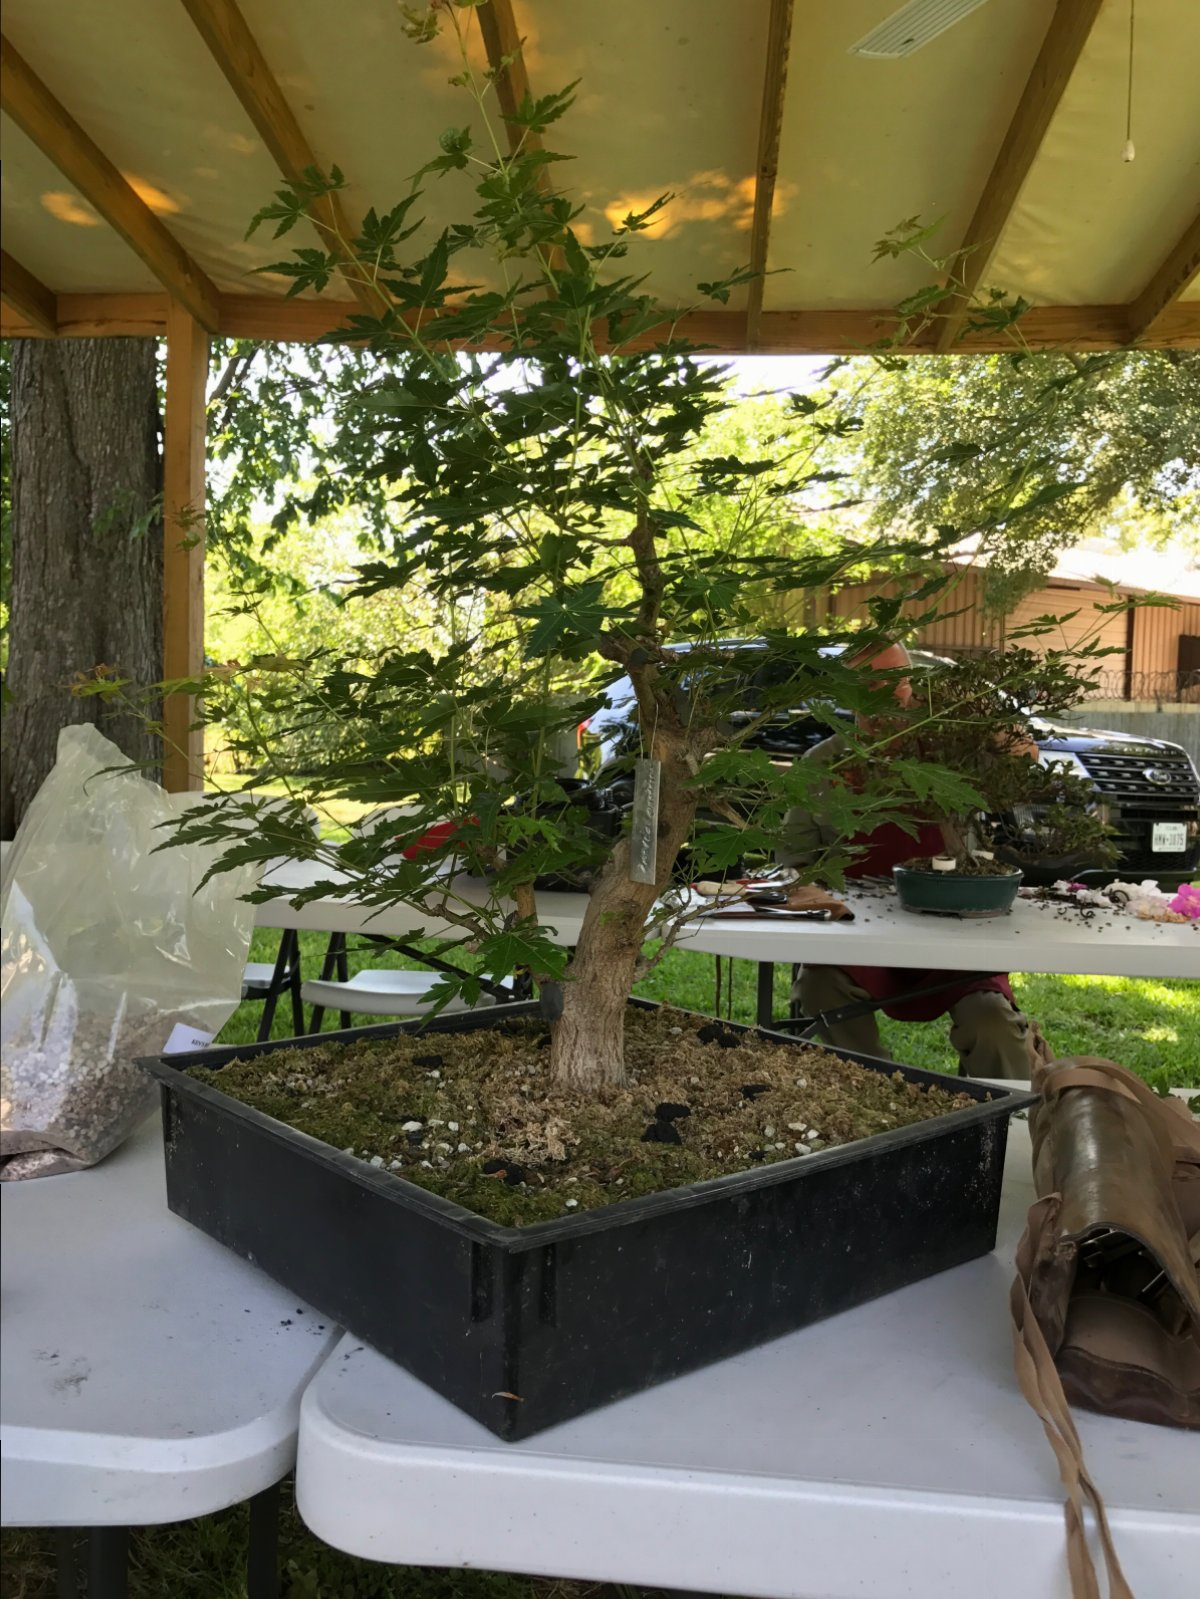 Admirable Developing Bonsai Maple Branches Spring Work Growing Bonsai Wiring Digital Resources Cettecompassionincorg